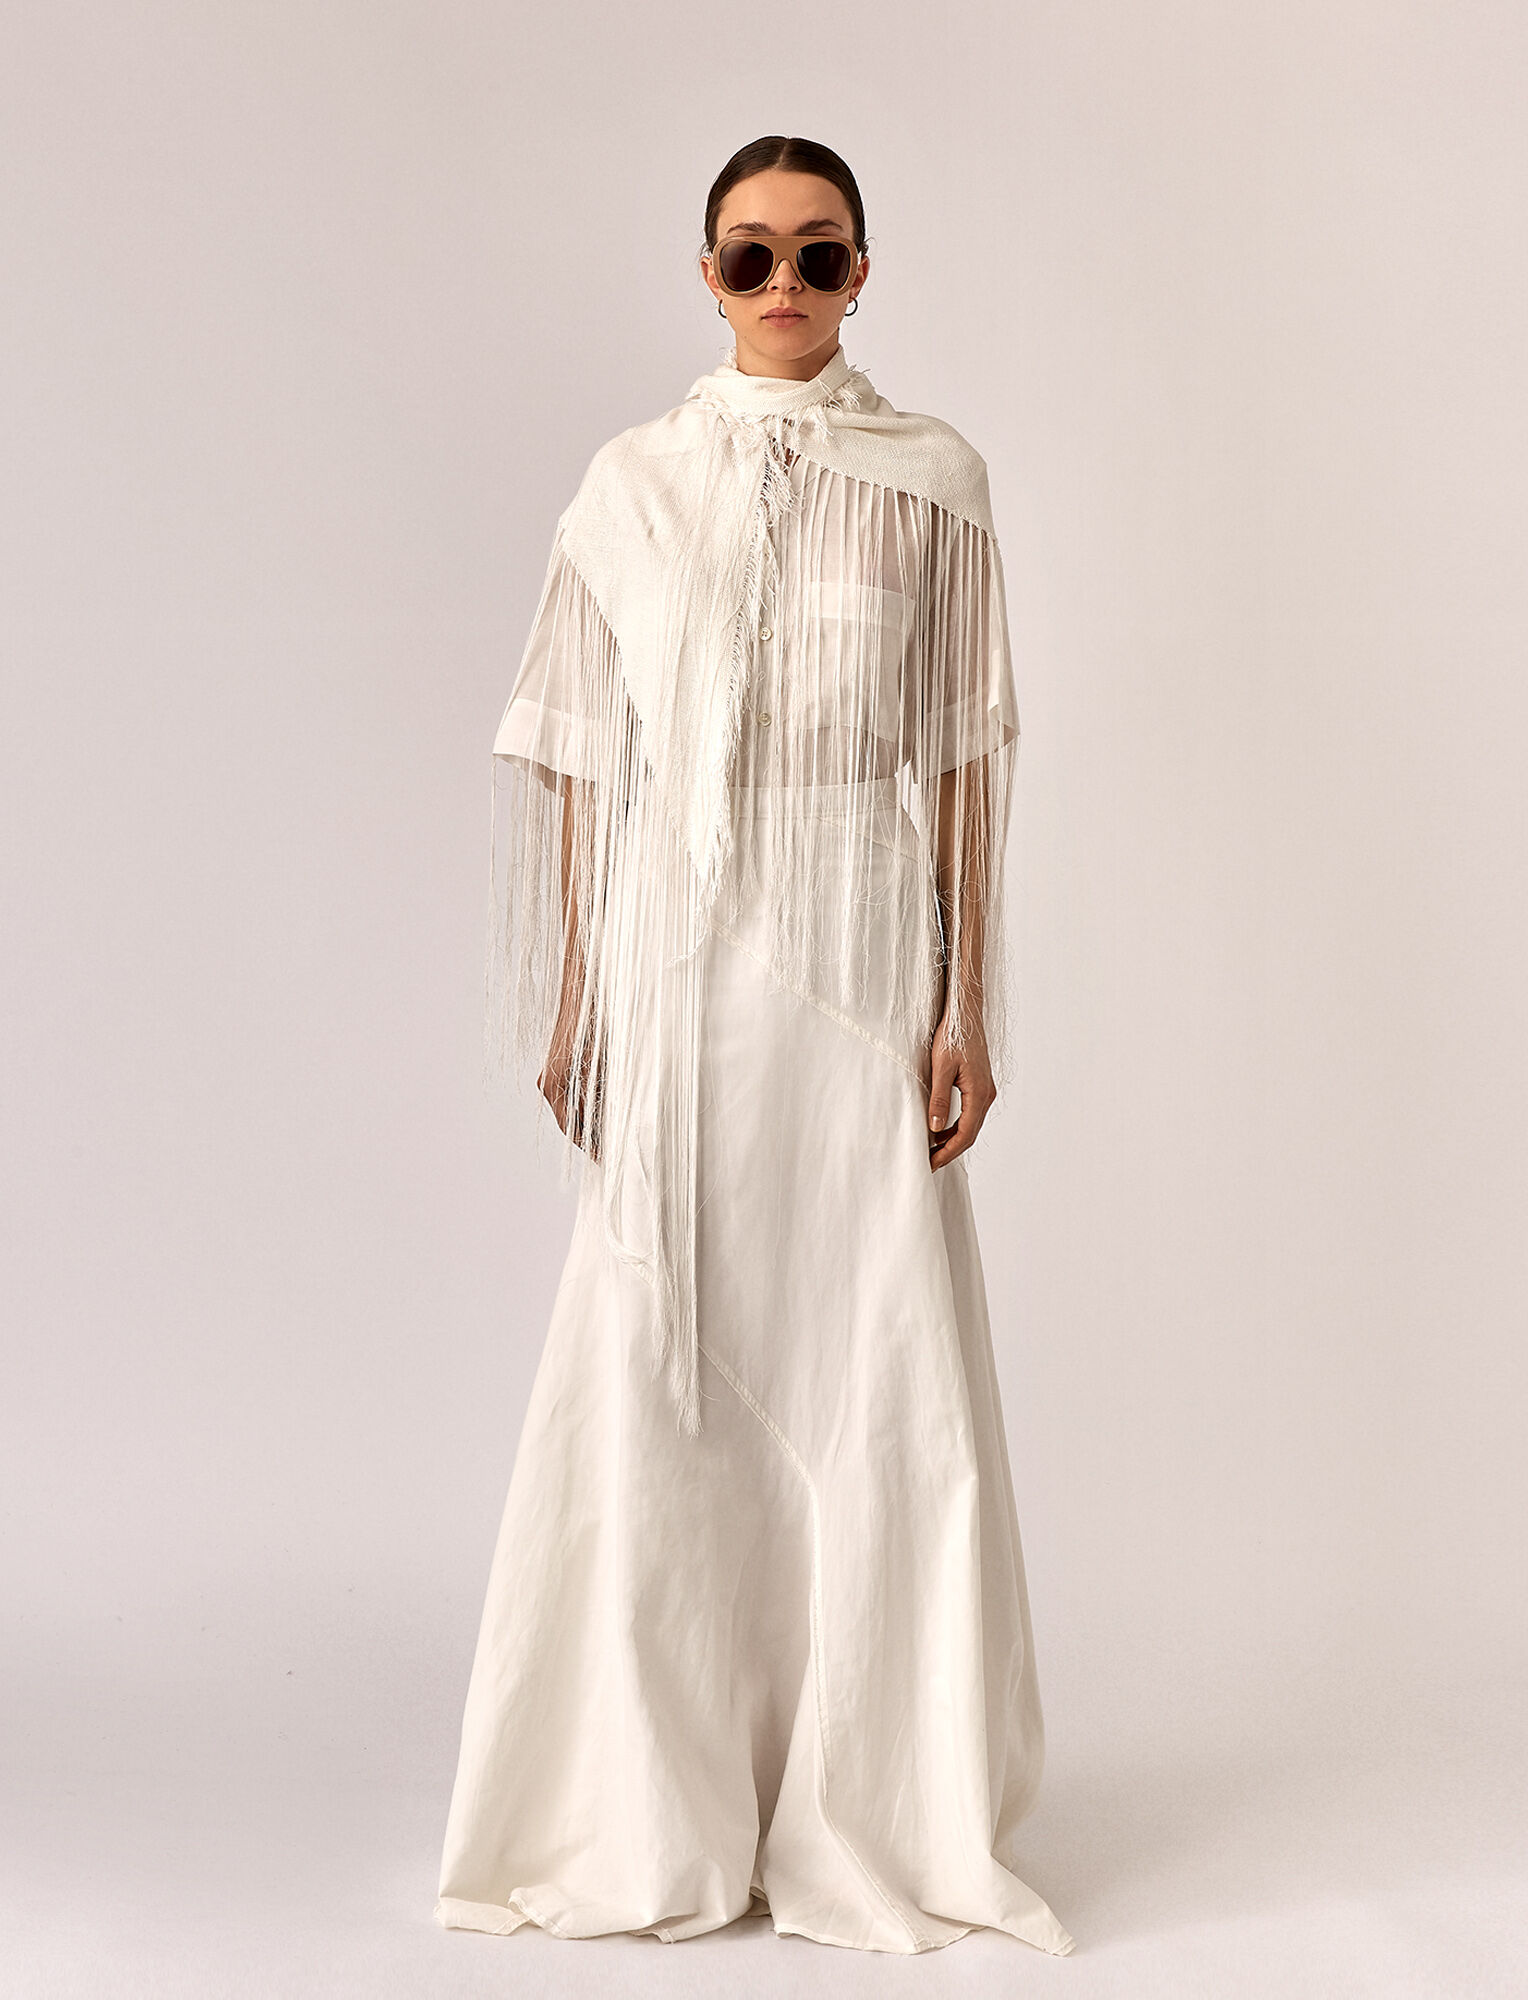 Joseph, Seia Linen Skirt, in WHITE